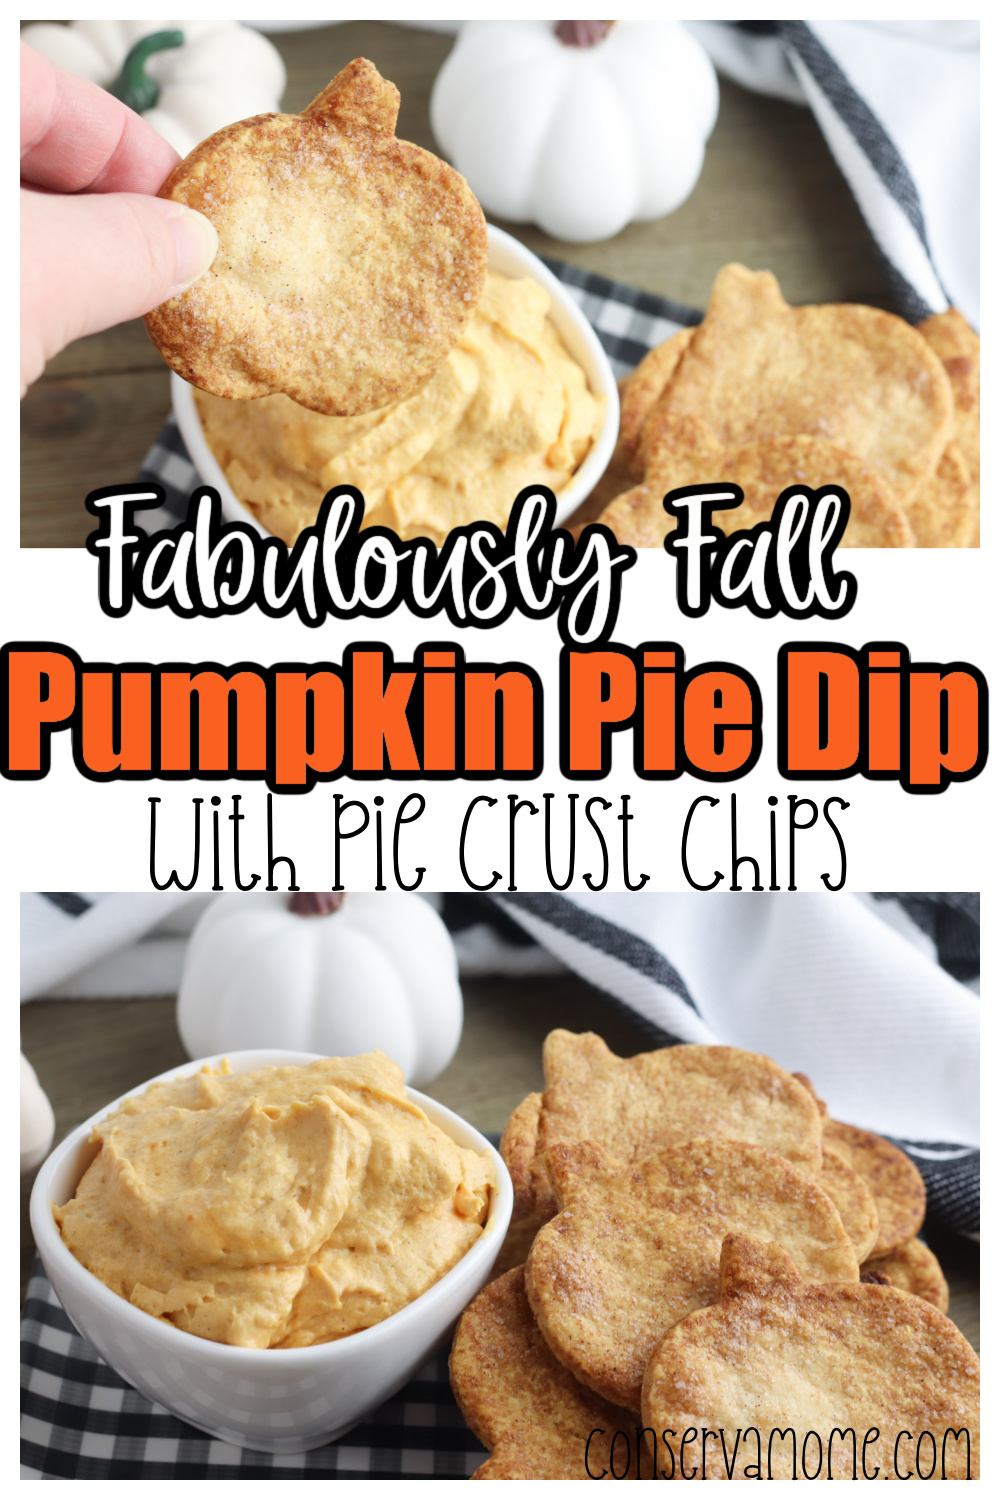 Fabulously Fall Pumpkin Pie Dip With Pie Crust Chips